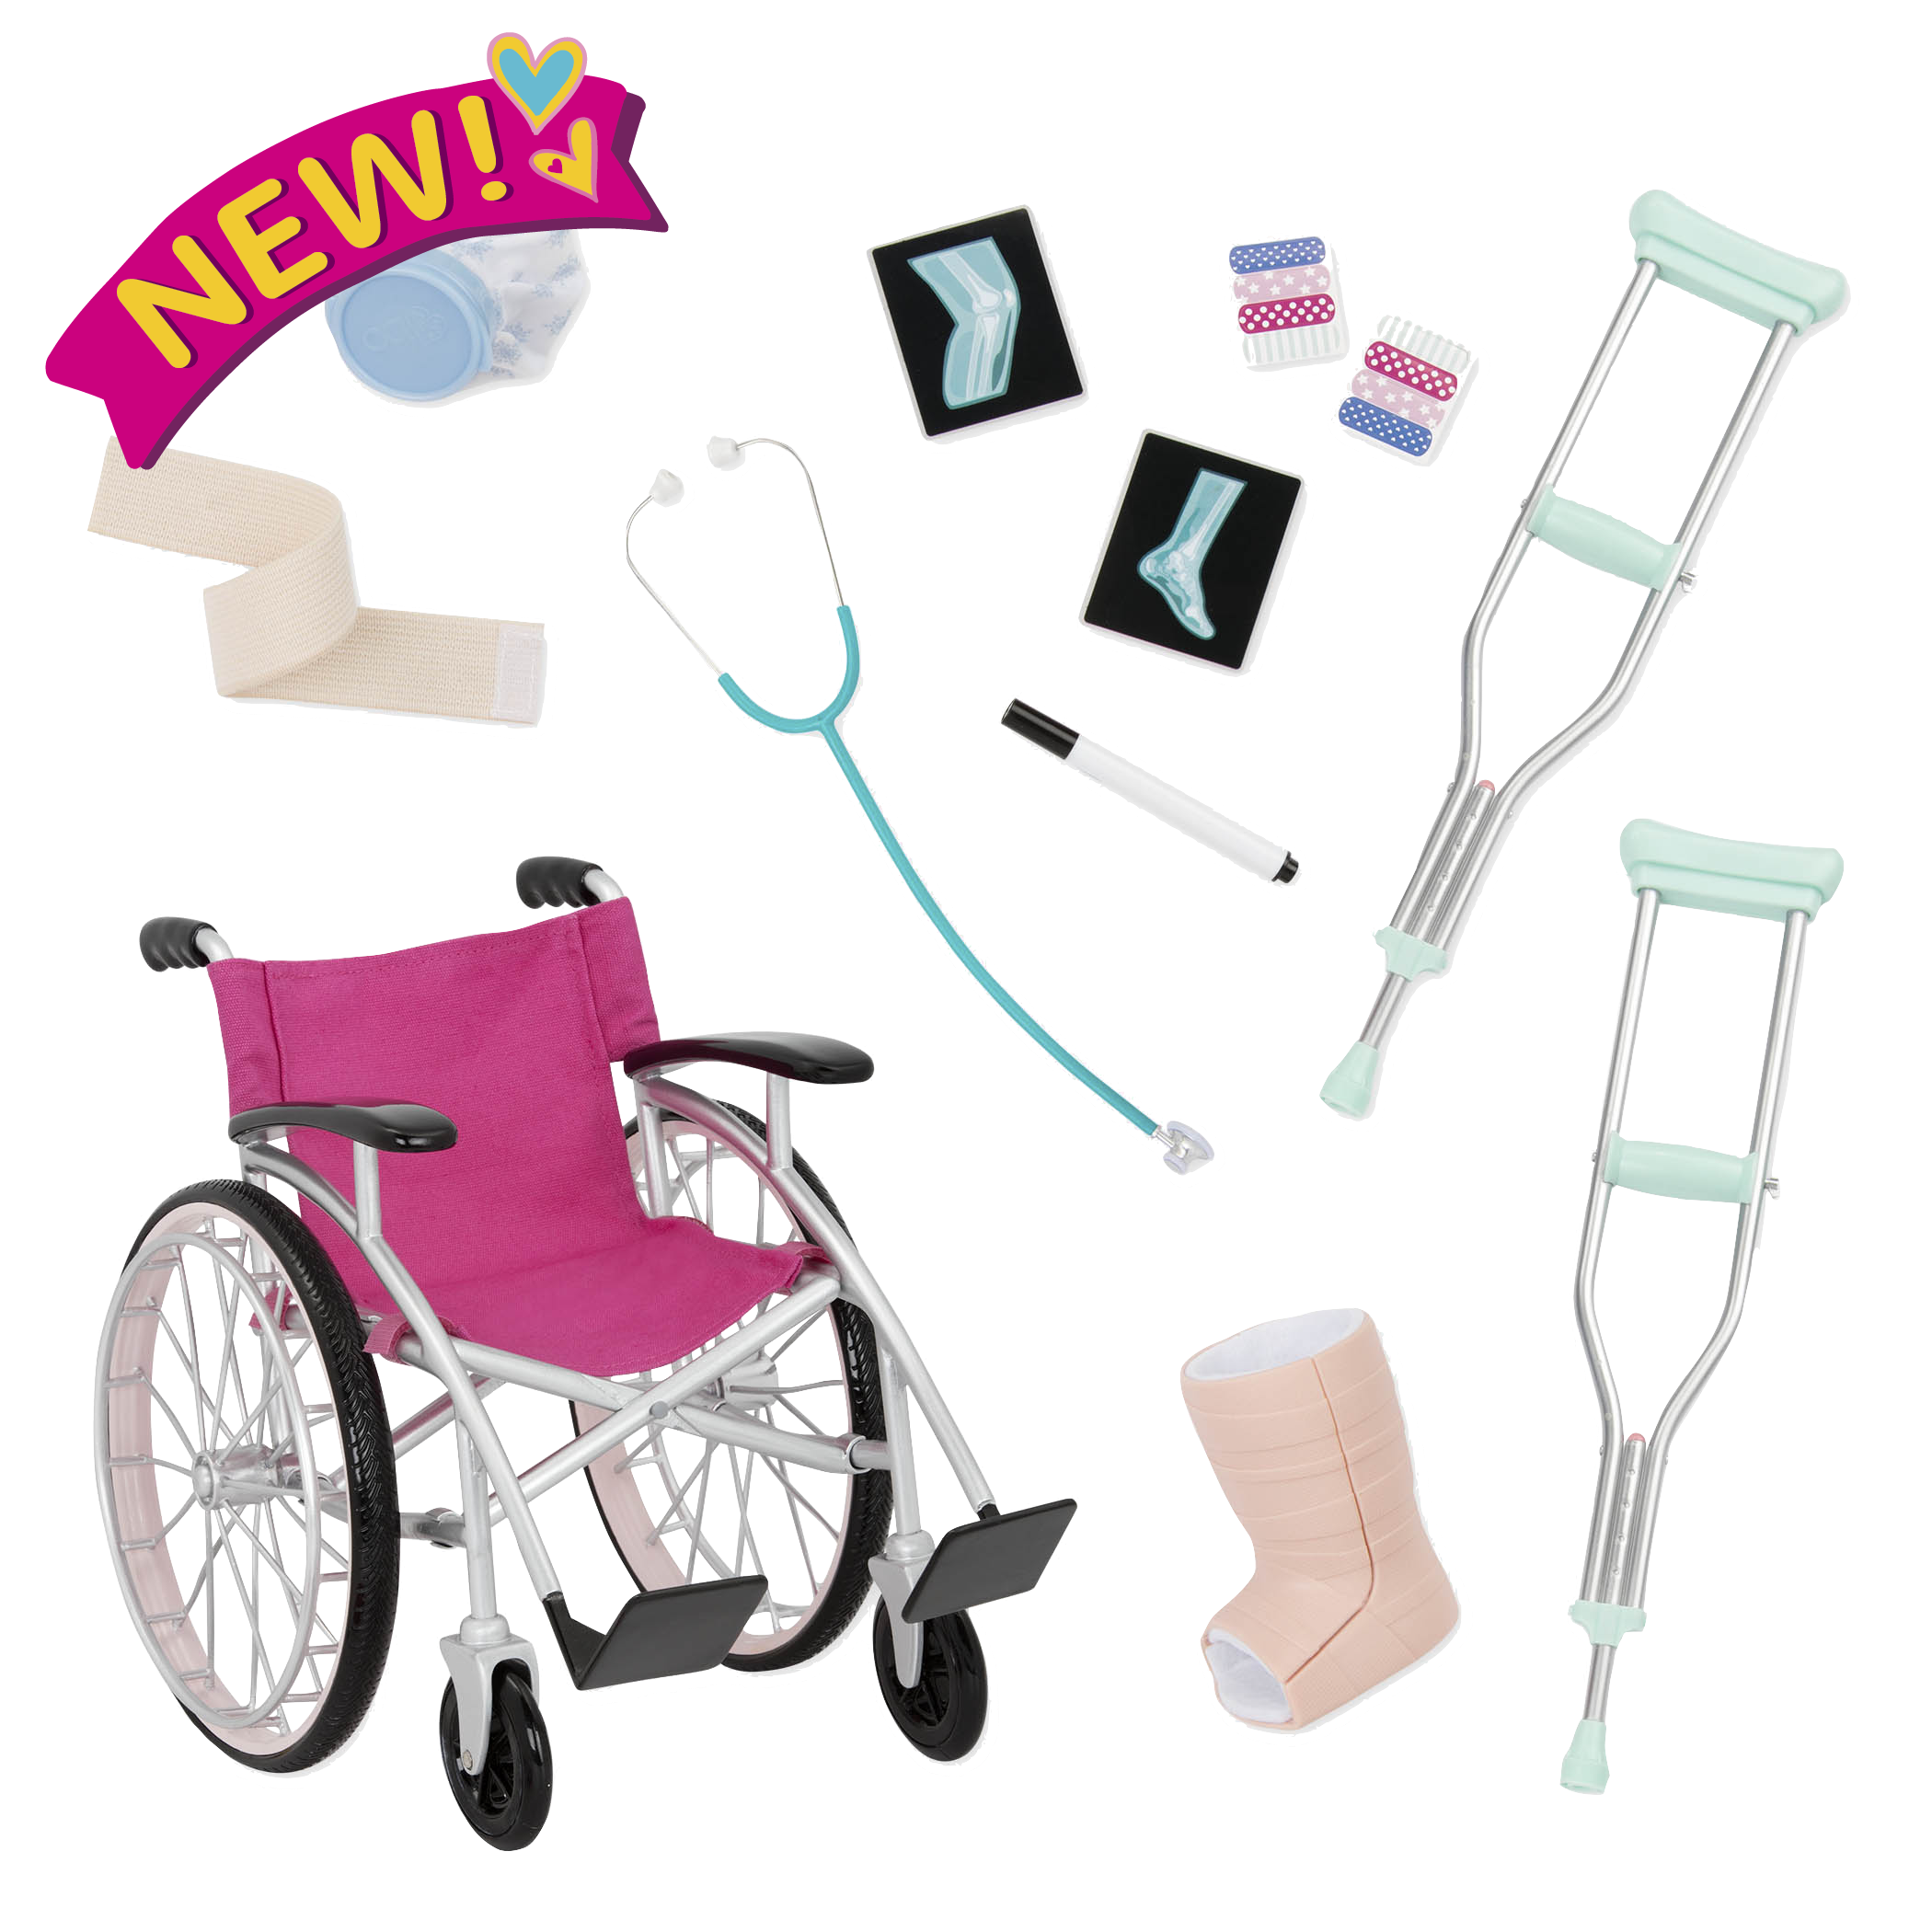 Heals on Wheels medical Accessories all components